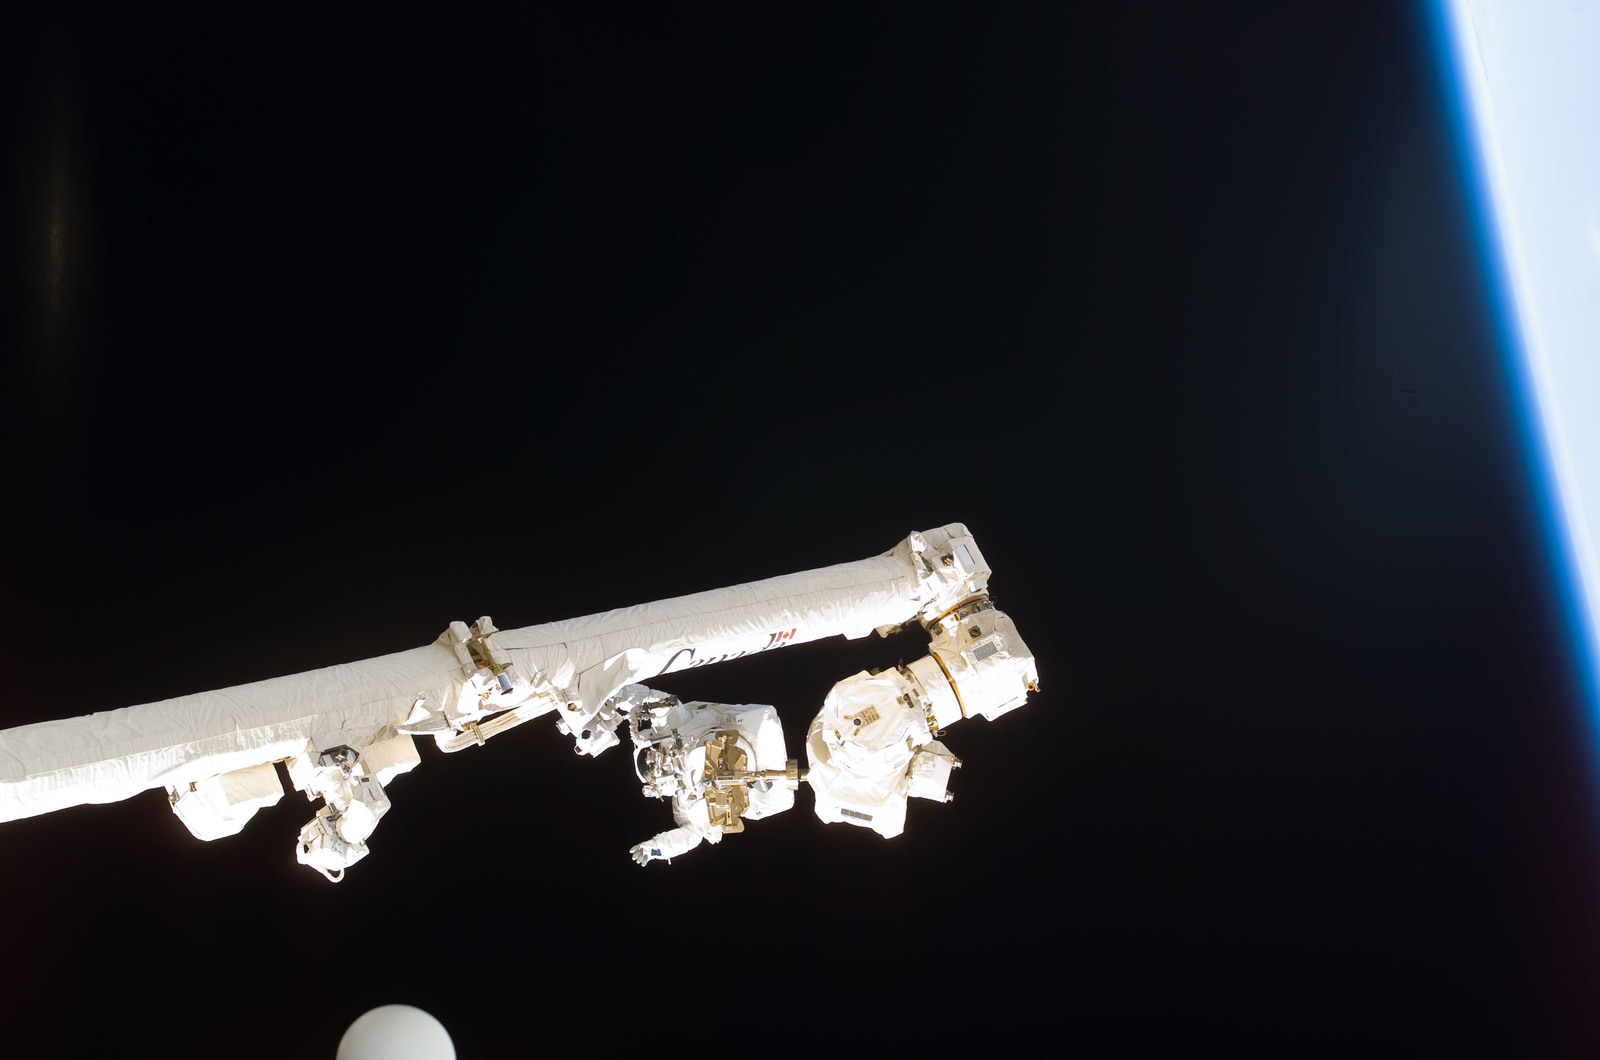 S114E6262 - STS-114 - Robinson on SSRMS Canadarm2 during EVA 3